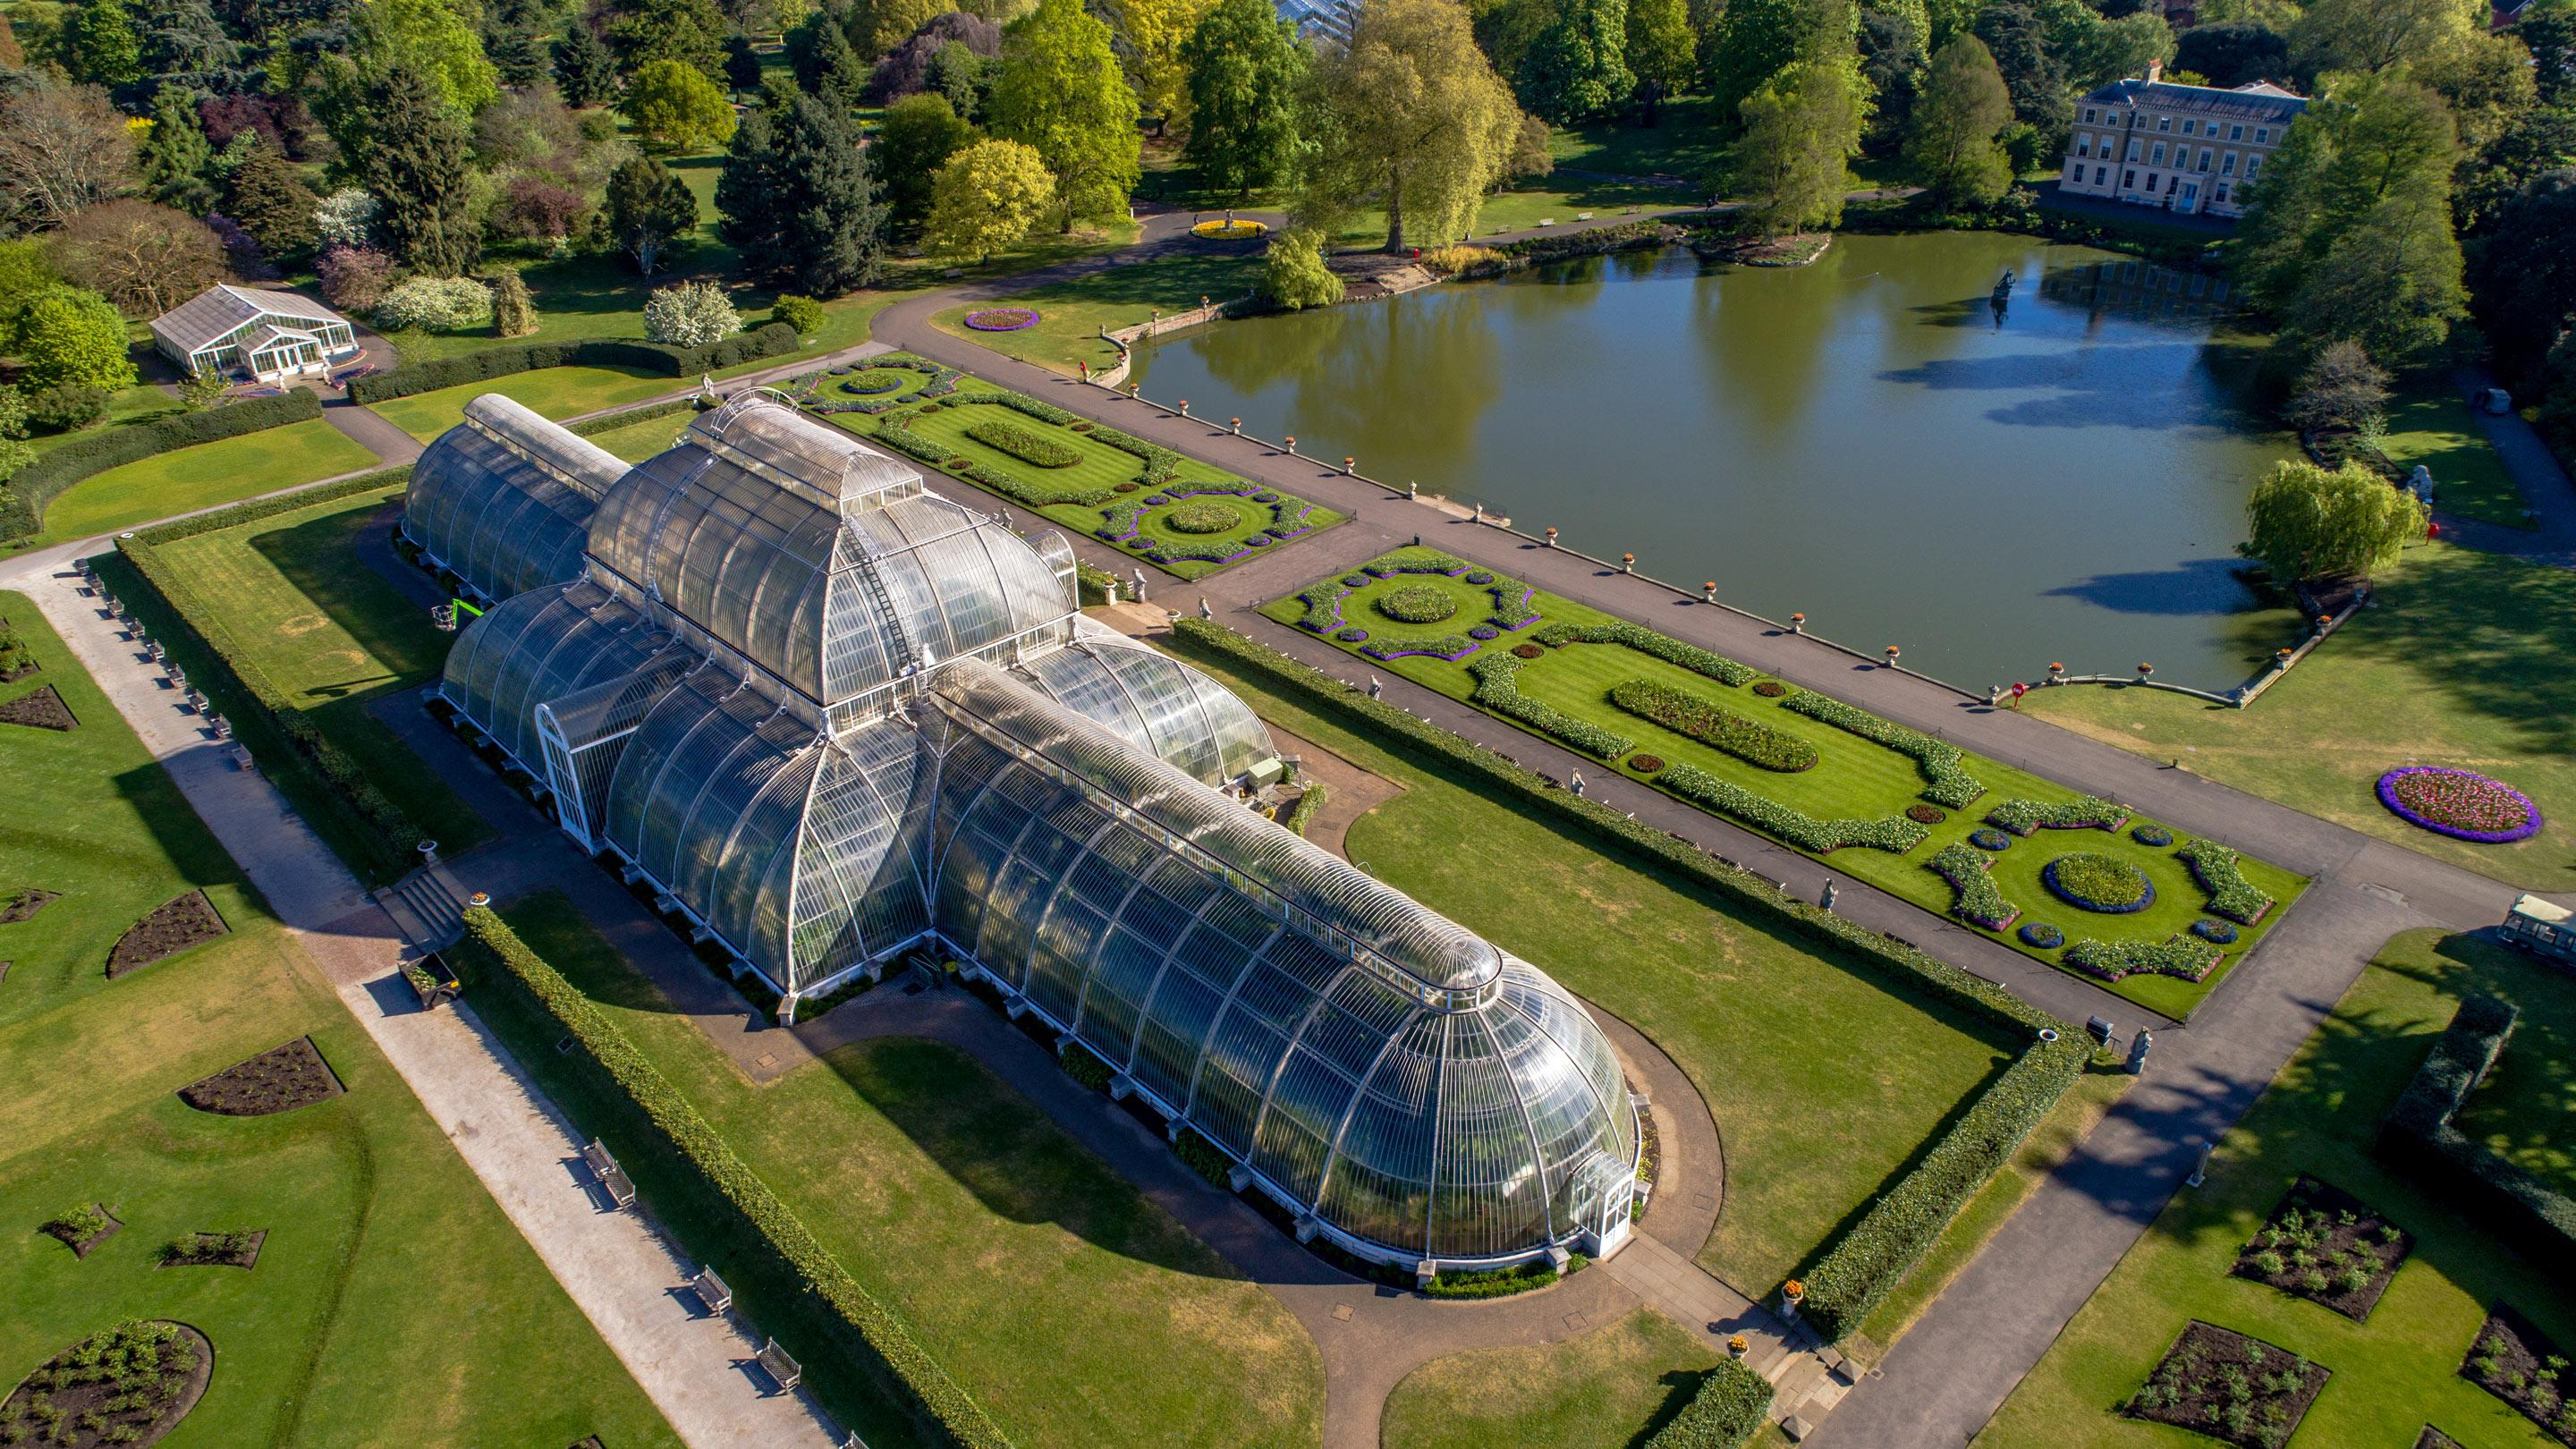 Aerial view of the Palm House at Kew